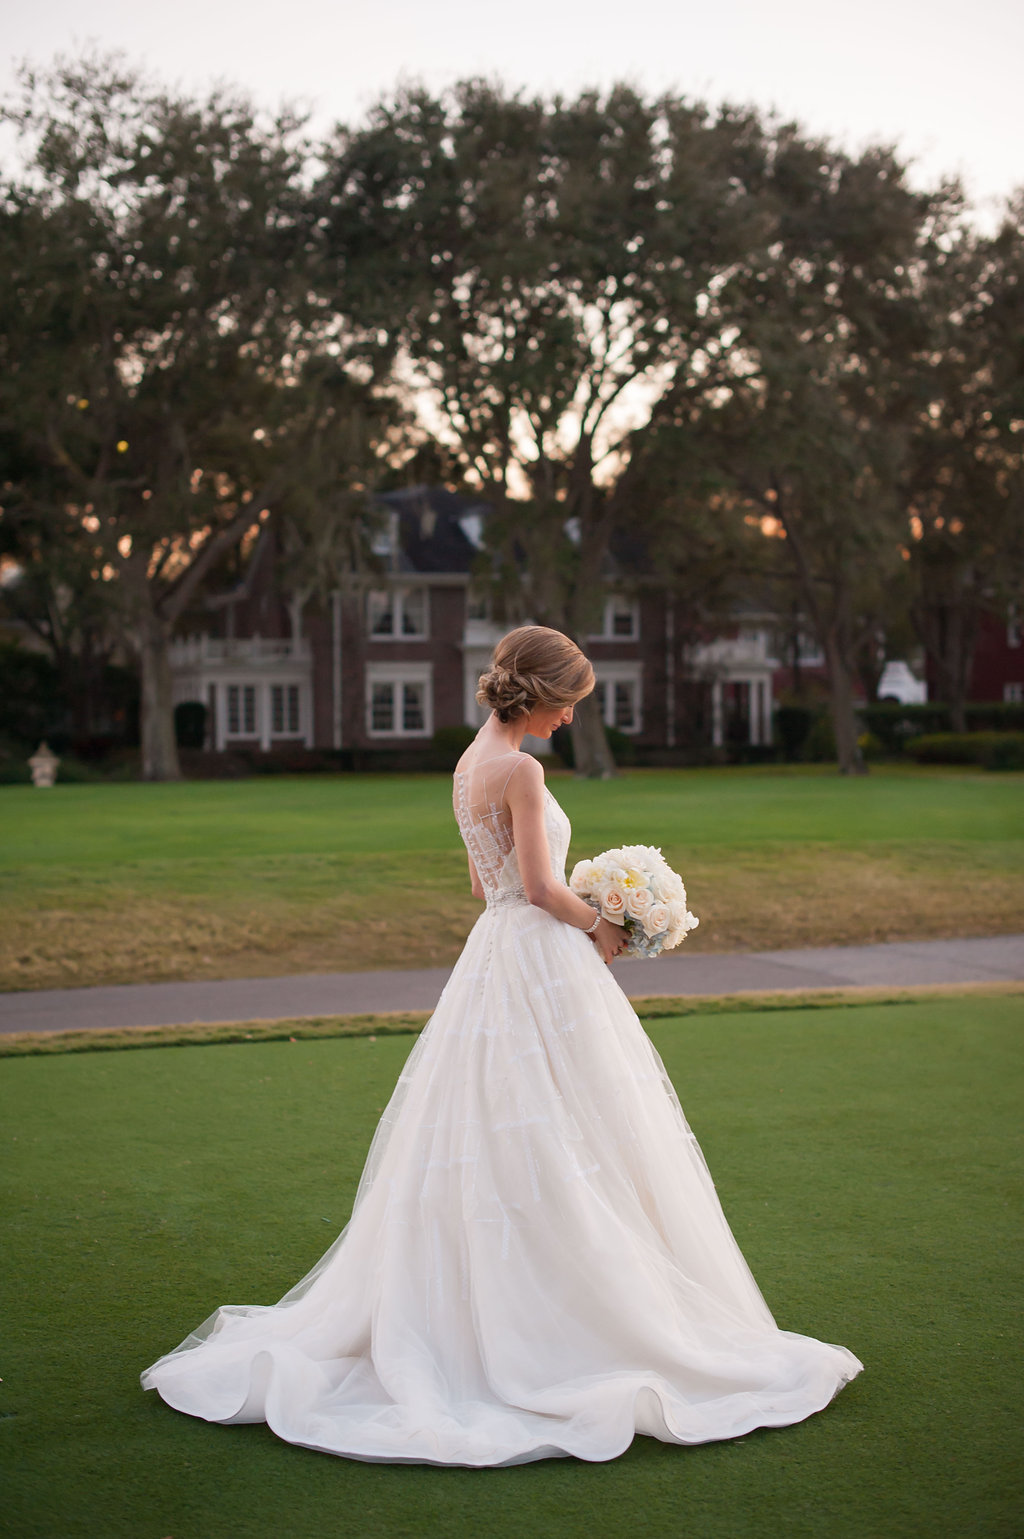 The bride looked absolutely picturesque with buttons cascading down the back of her gown, and the sunset illuminating her on the green of the Palma Ceia golf course.